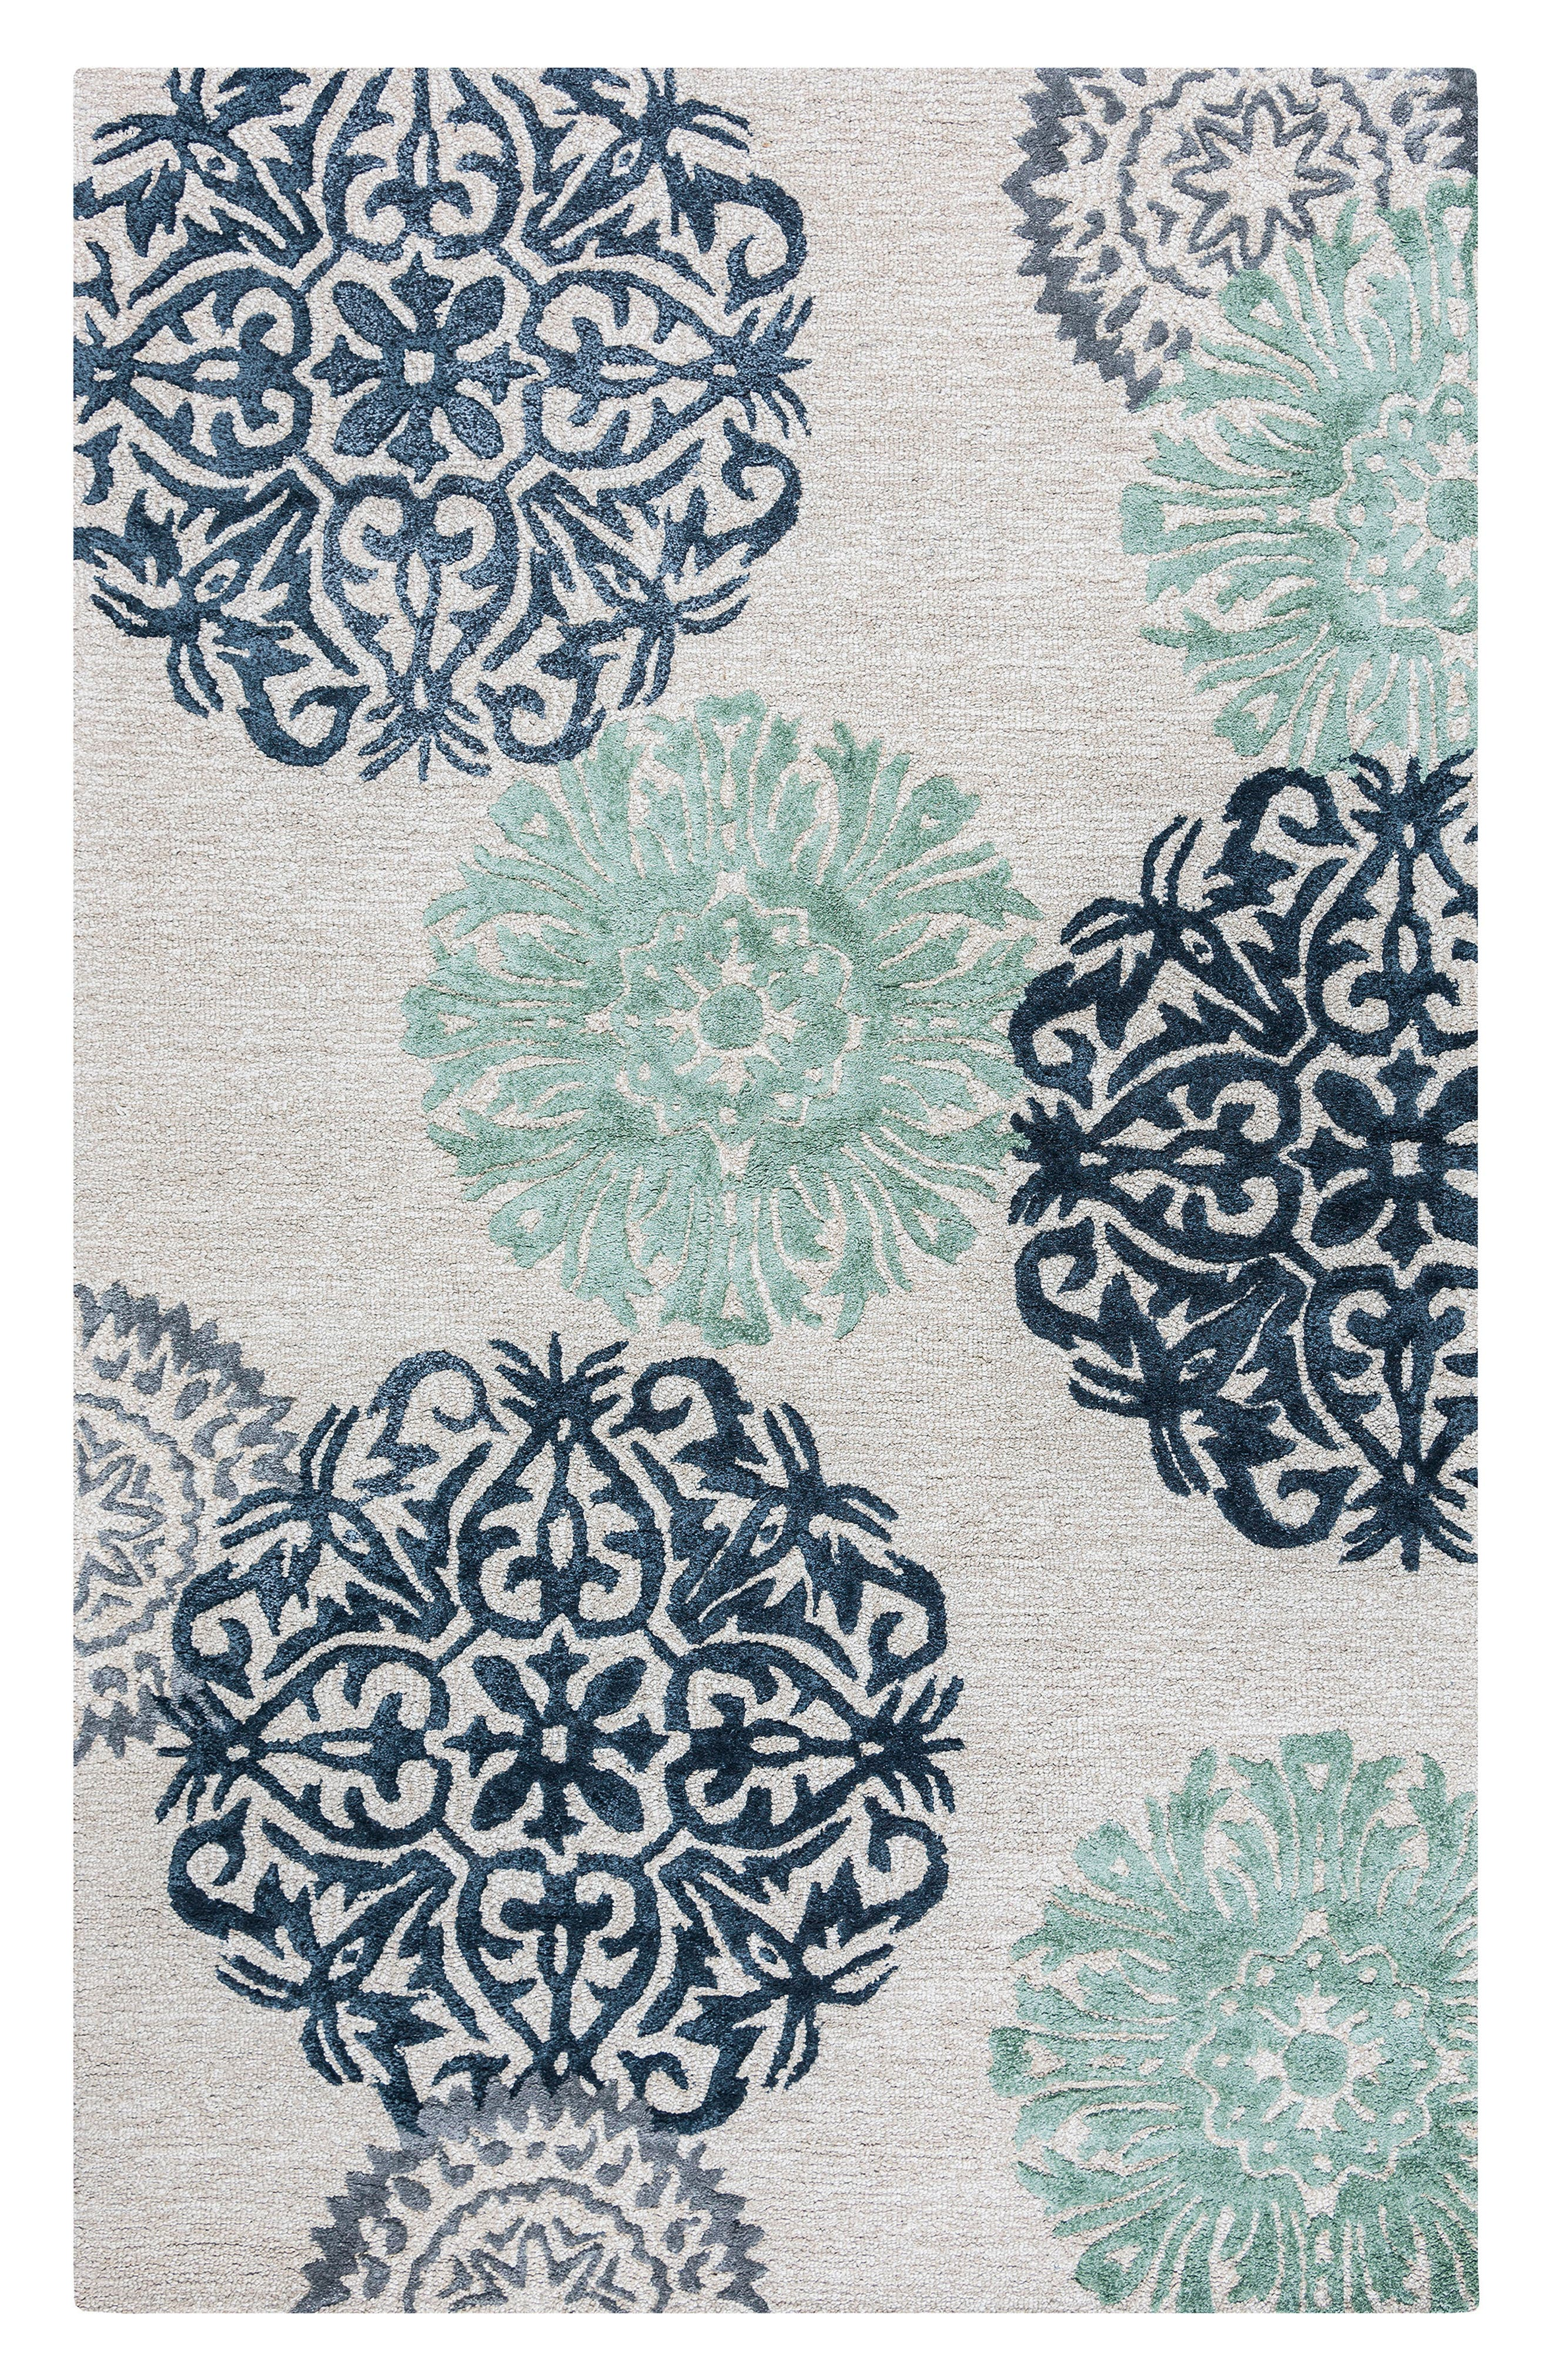 Alternate Image 1 Selected - Rizzy Home 'Eden Harbor' Hand Tufted Wool Area Rug